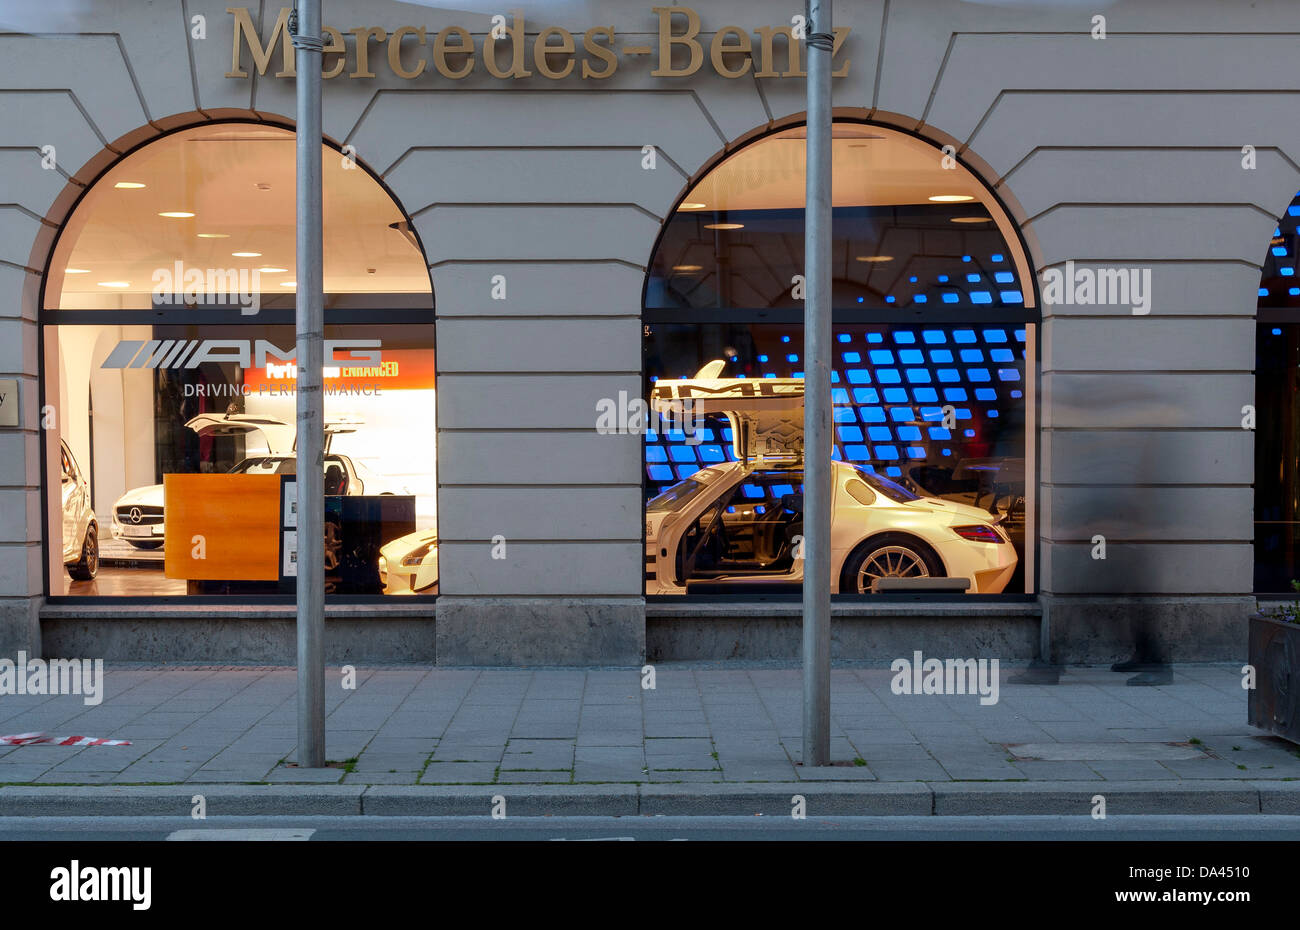 Mercedes Benz Store with AMG Mercedes SLK at Briennerstrasse Munich, Bavaria, Germany - Stock Image